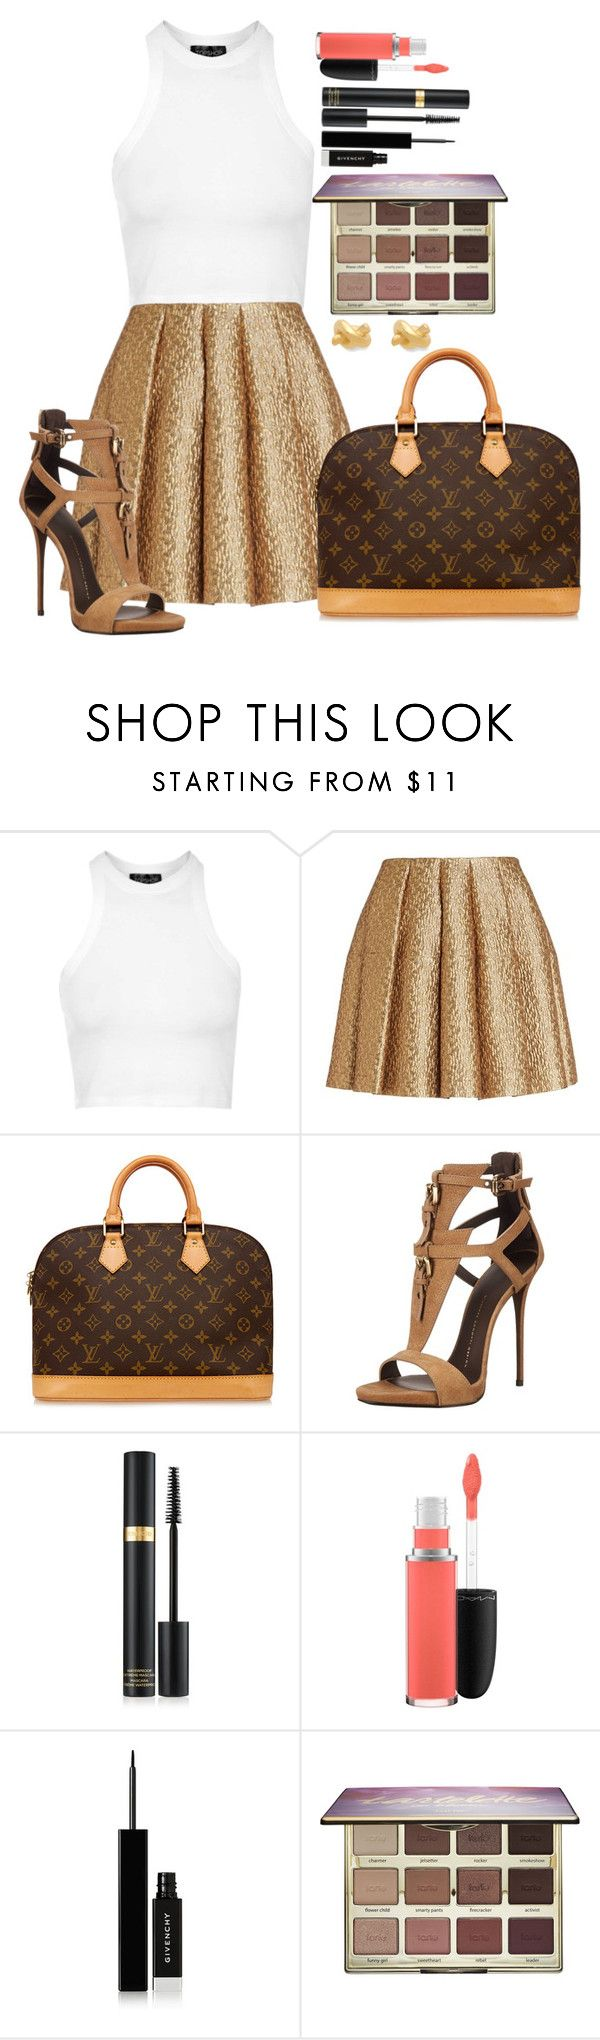 """""""Untitled #1369"""" by fabianarveloc on Polyvore featuring Topshop, Creatures Of The Wind, Louis Vuitton, Giuseppe Zanotti, MAC Cosmetics, Givenchy, tarte, Kate Spade, women's clothing and women's fashion"""